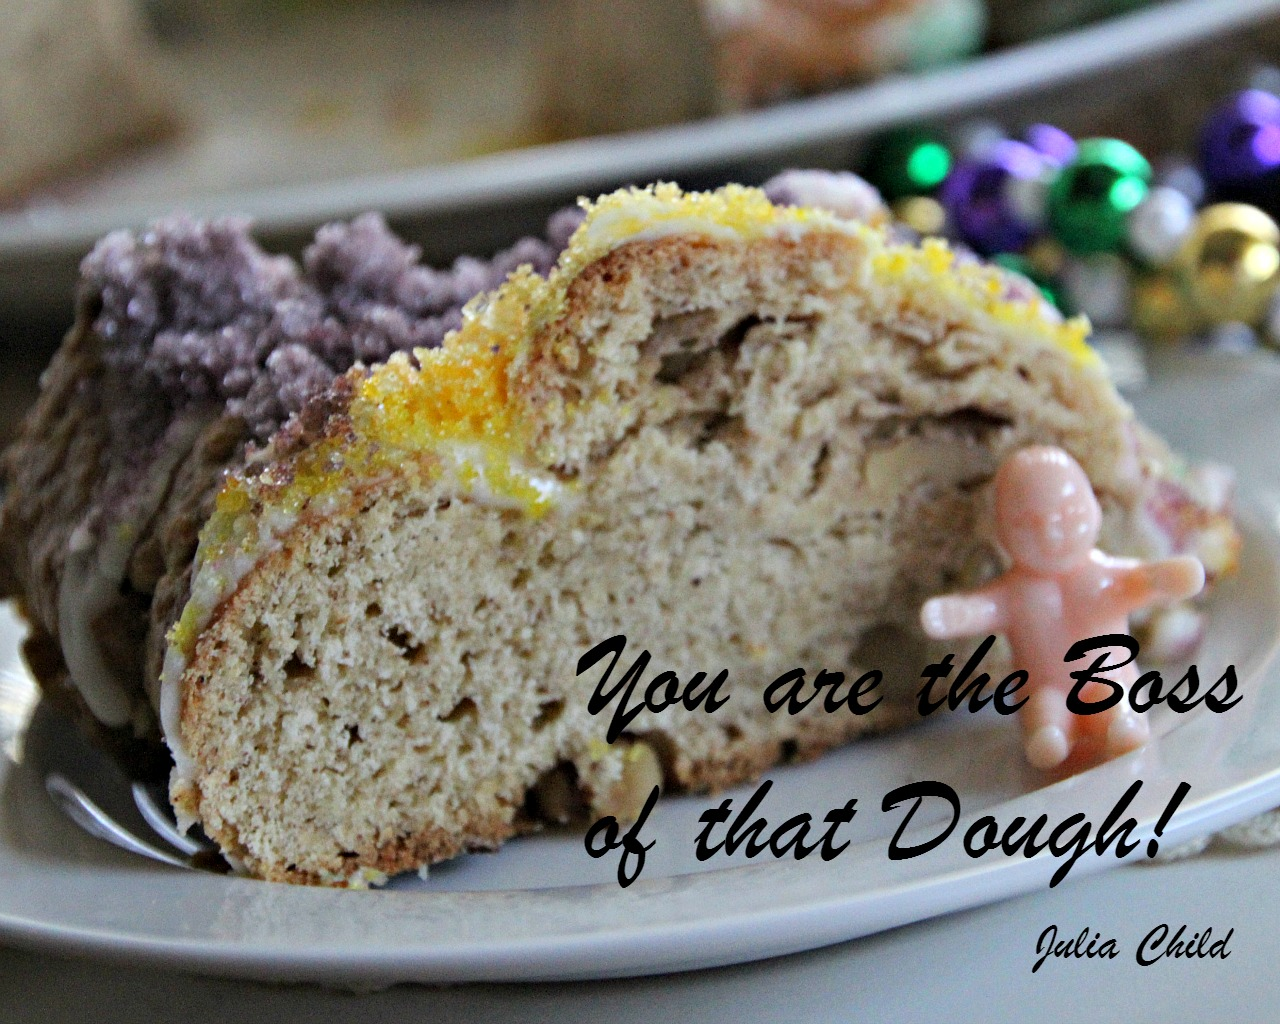 Slice of Traditional King Cake recipe and a Julia Child quote